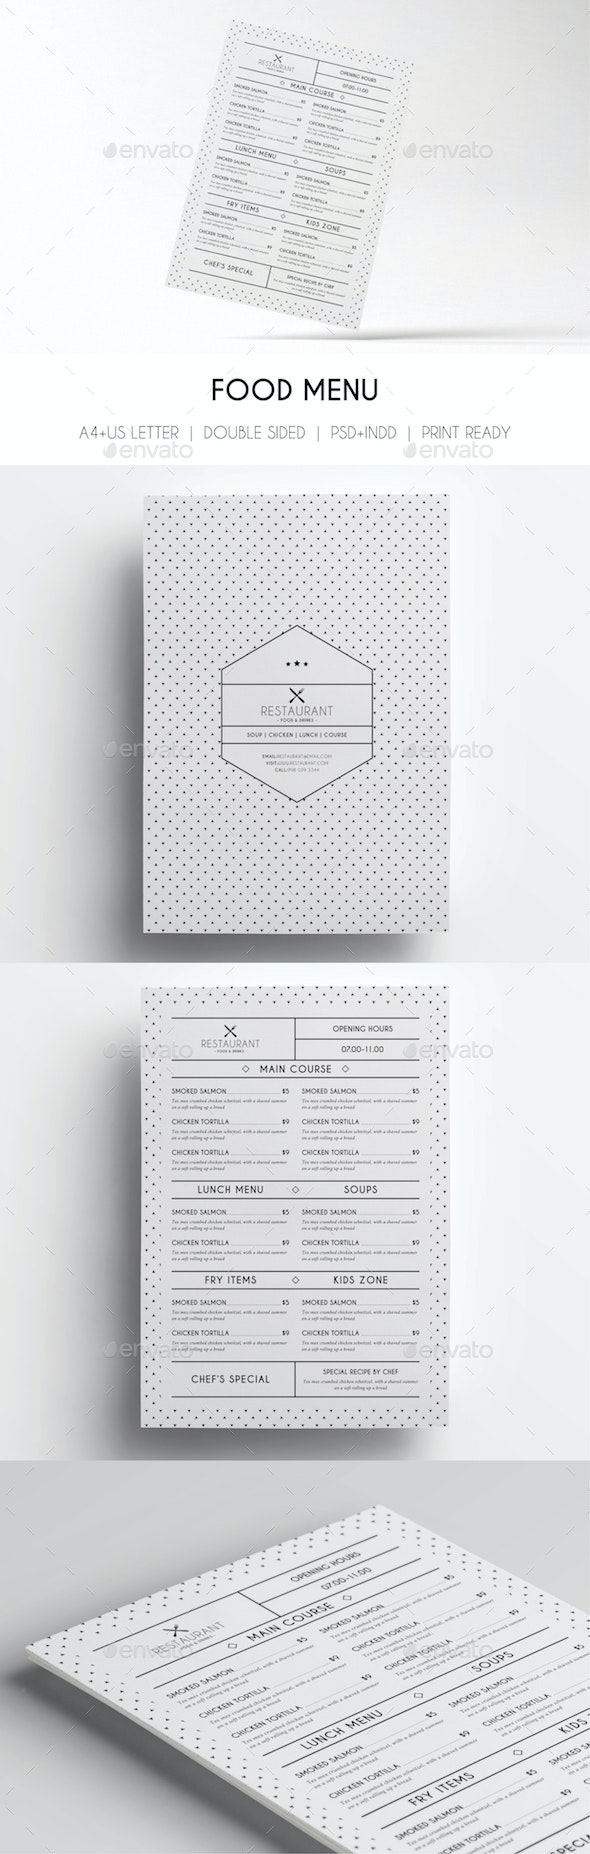 Minimal Menu Template - Food Menus Print Templates